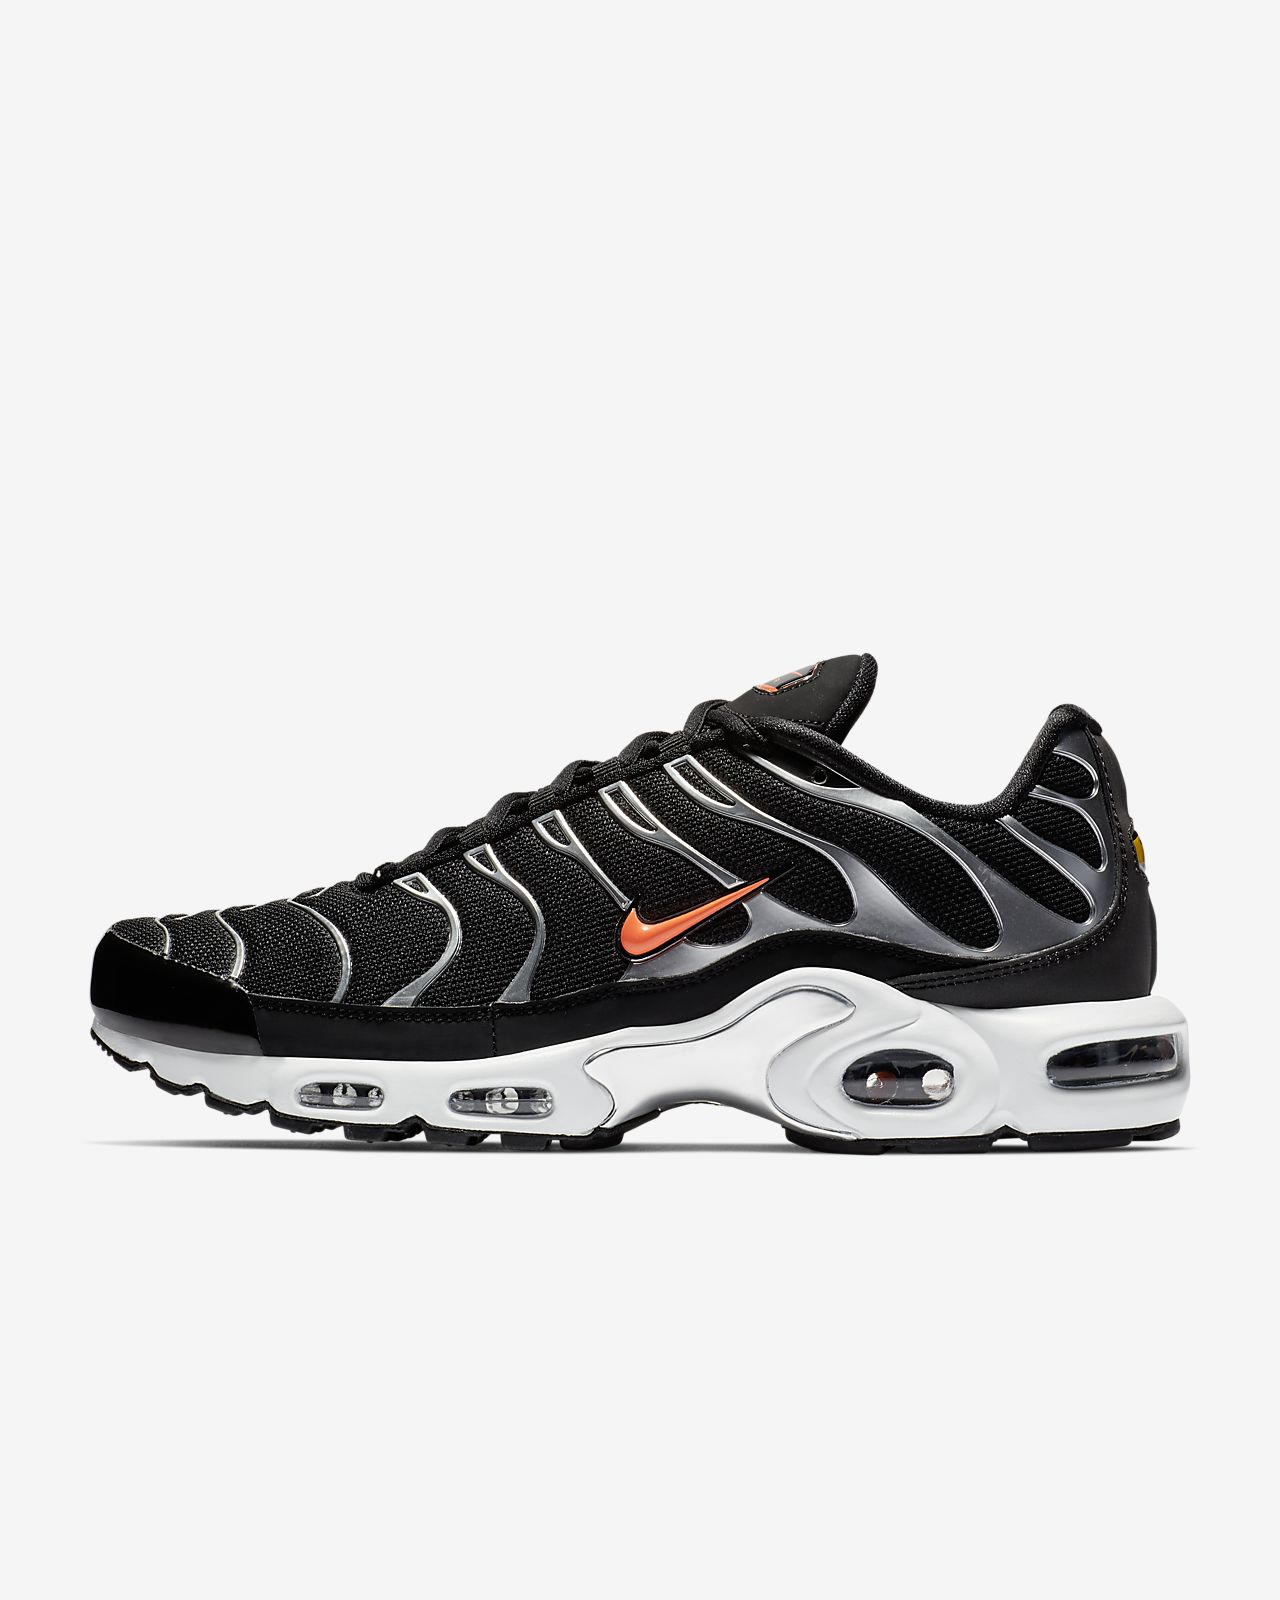 super popular 16a4d b5dc7 Men s Shoe. Nike Air Max Plus TN SE